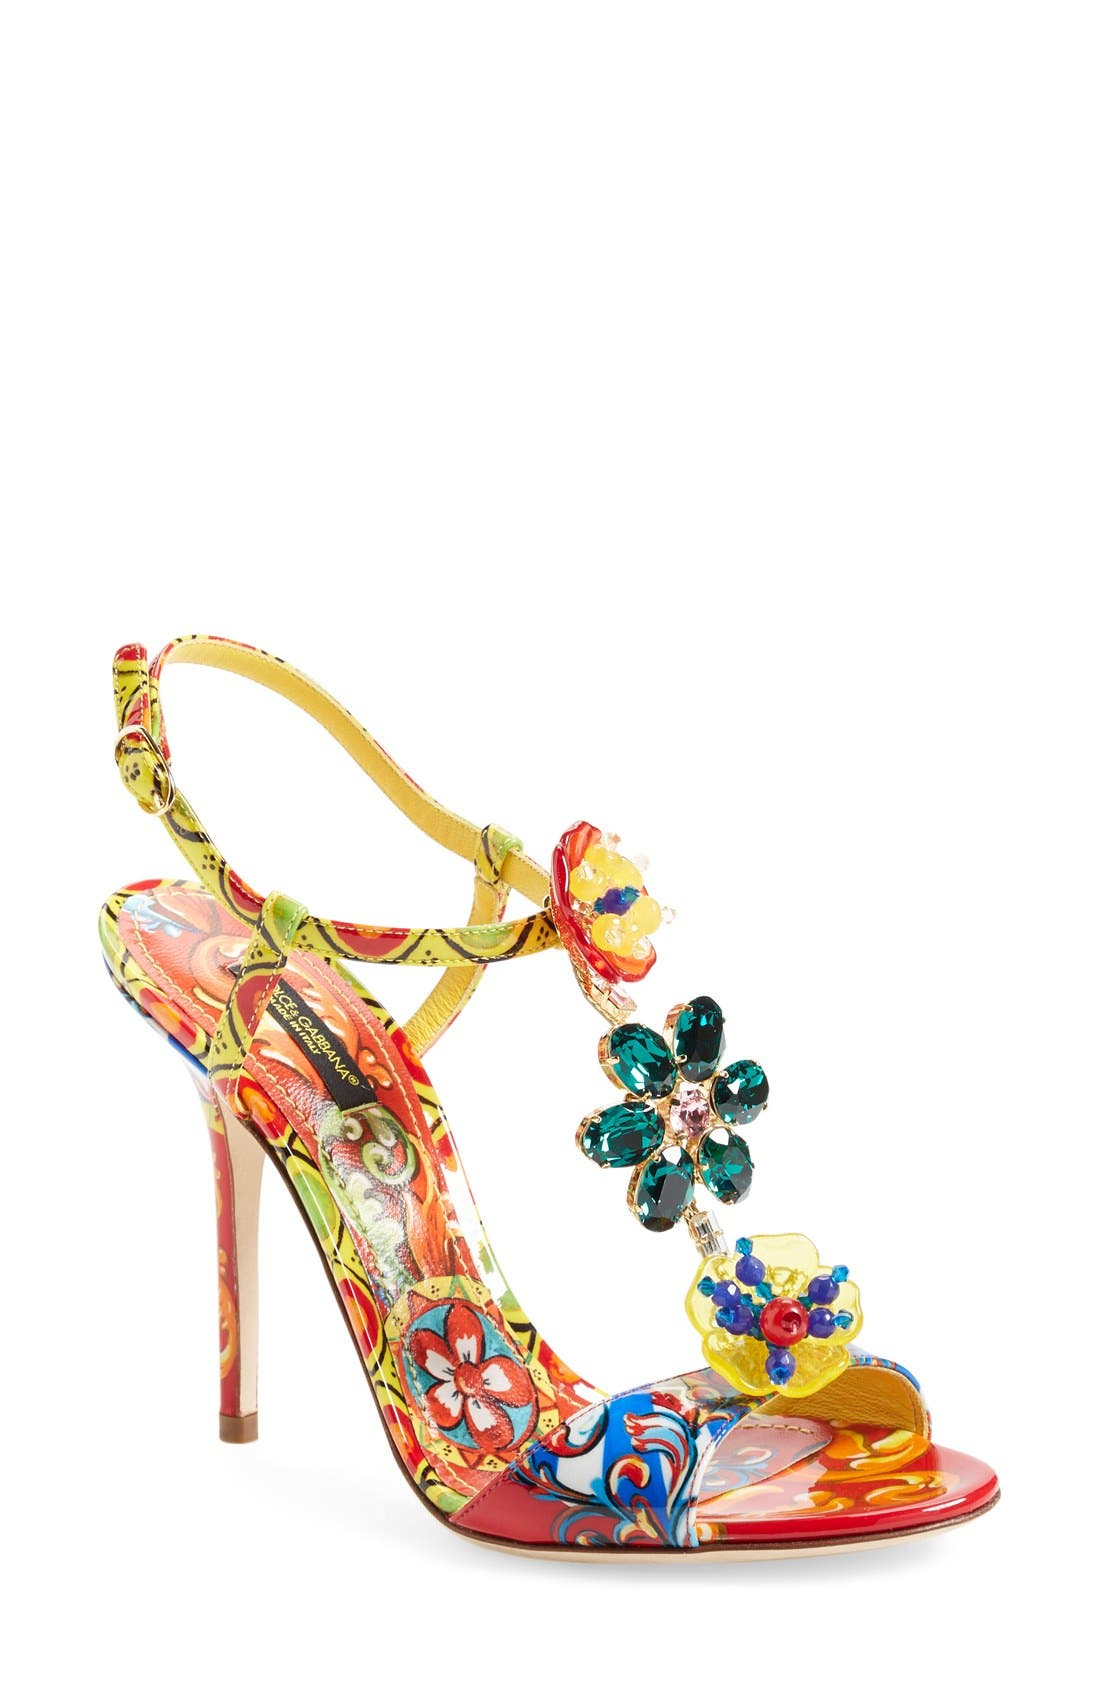 Main Image - Dolce&Gabbana Jeweled T-Strap Sandal (Women)